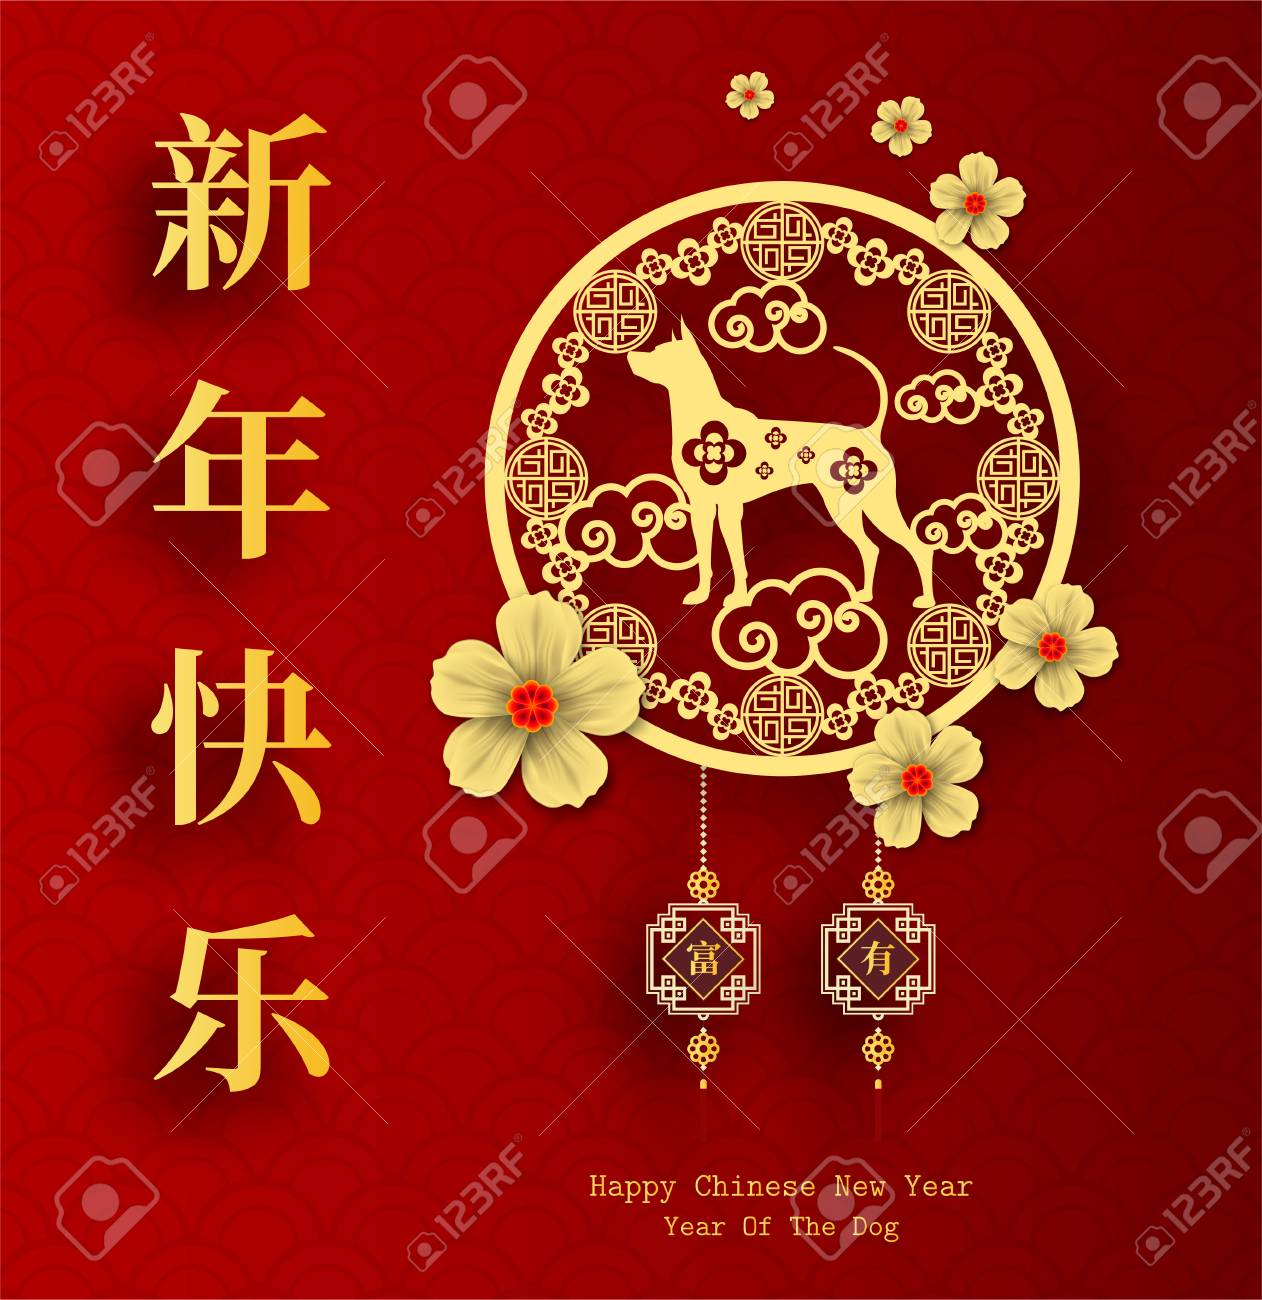 Chinese Greeting Cards Boatremyeaton